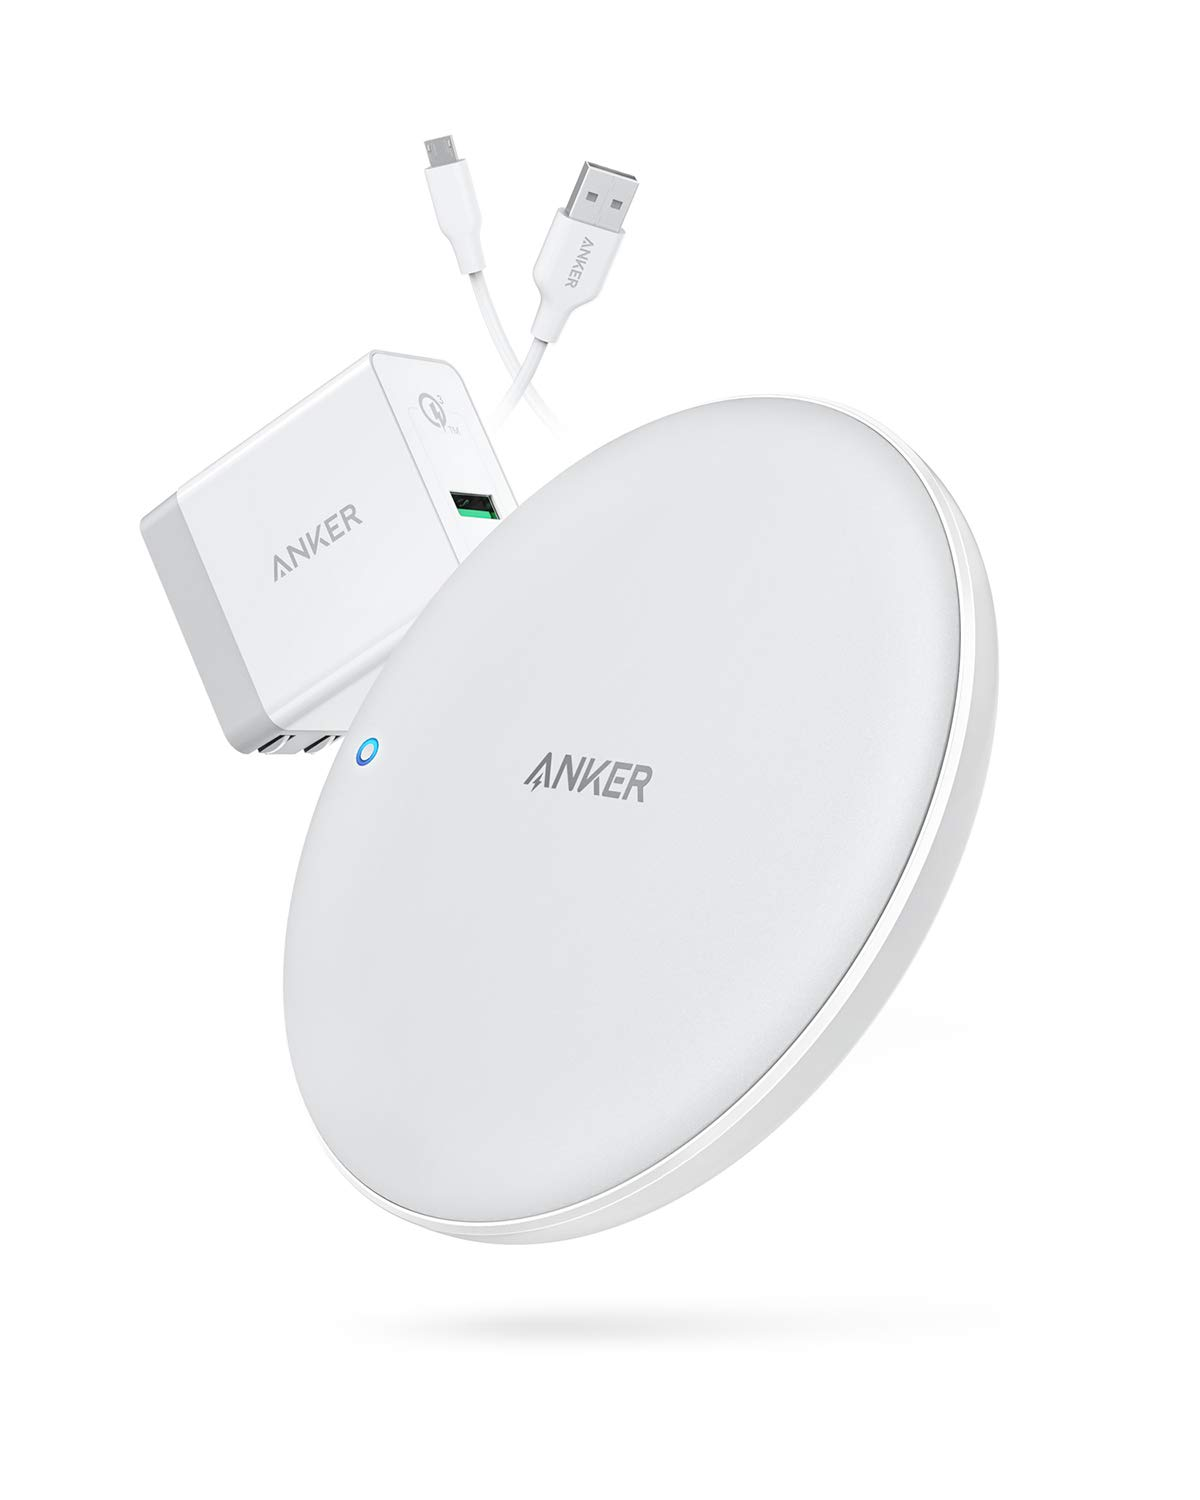 amazon anker powerwave 7 5 fast wireless charging pad with Evo 9 Mr anker powerwave 7 5 fast wireless charging pad with internal cooling fan qi certified 7 5w patible iphone xr xs max xs x 8 8 plus 10w charges galaxy